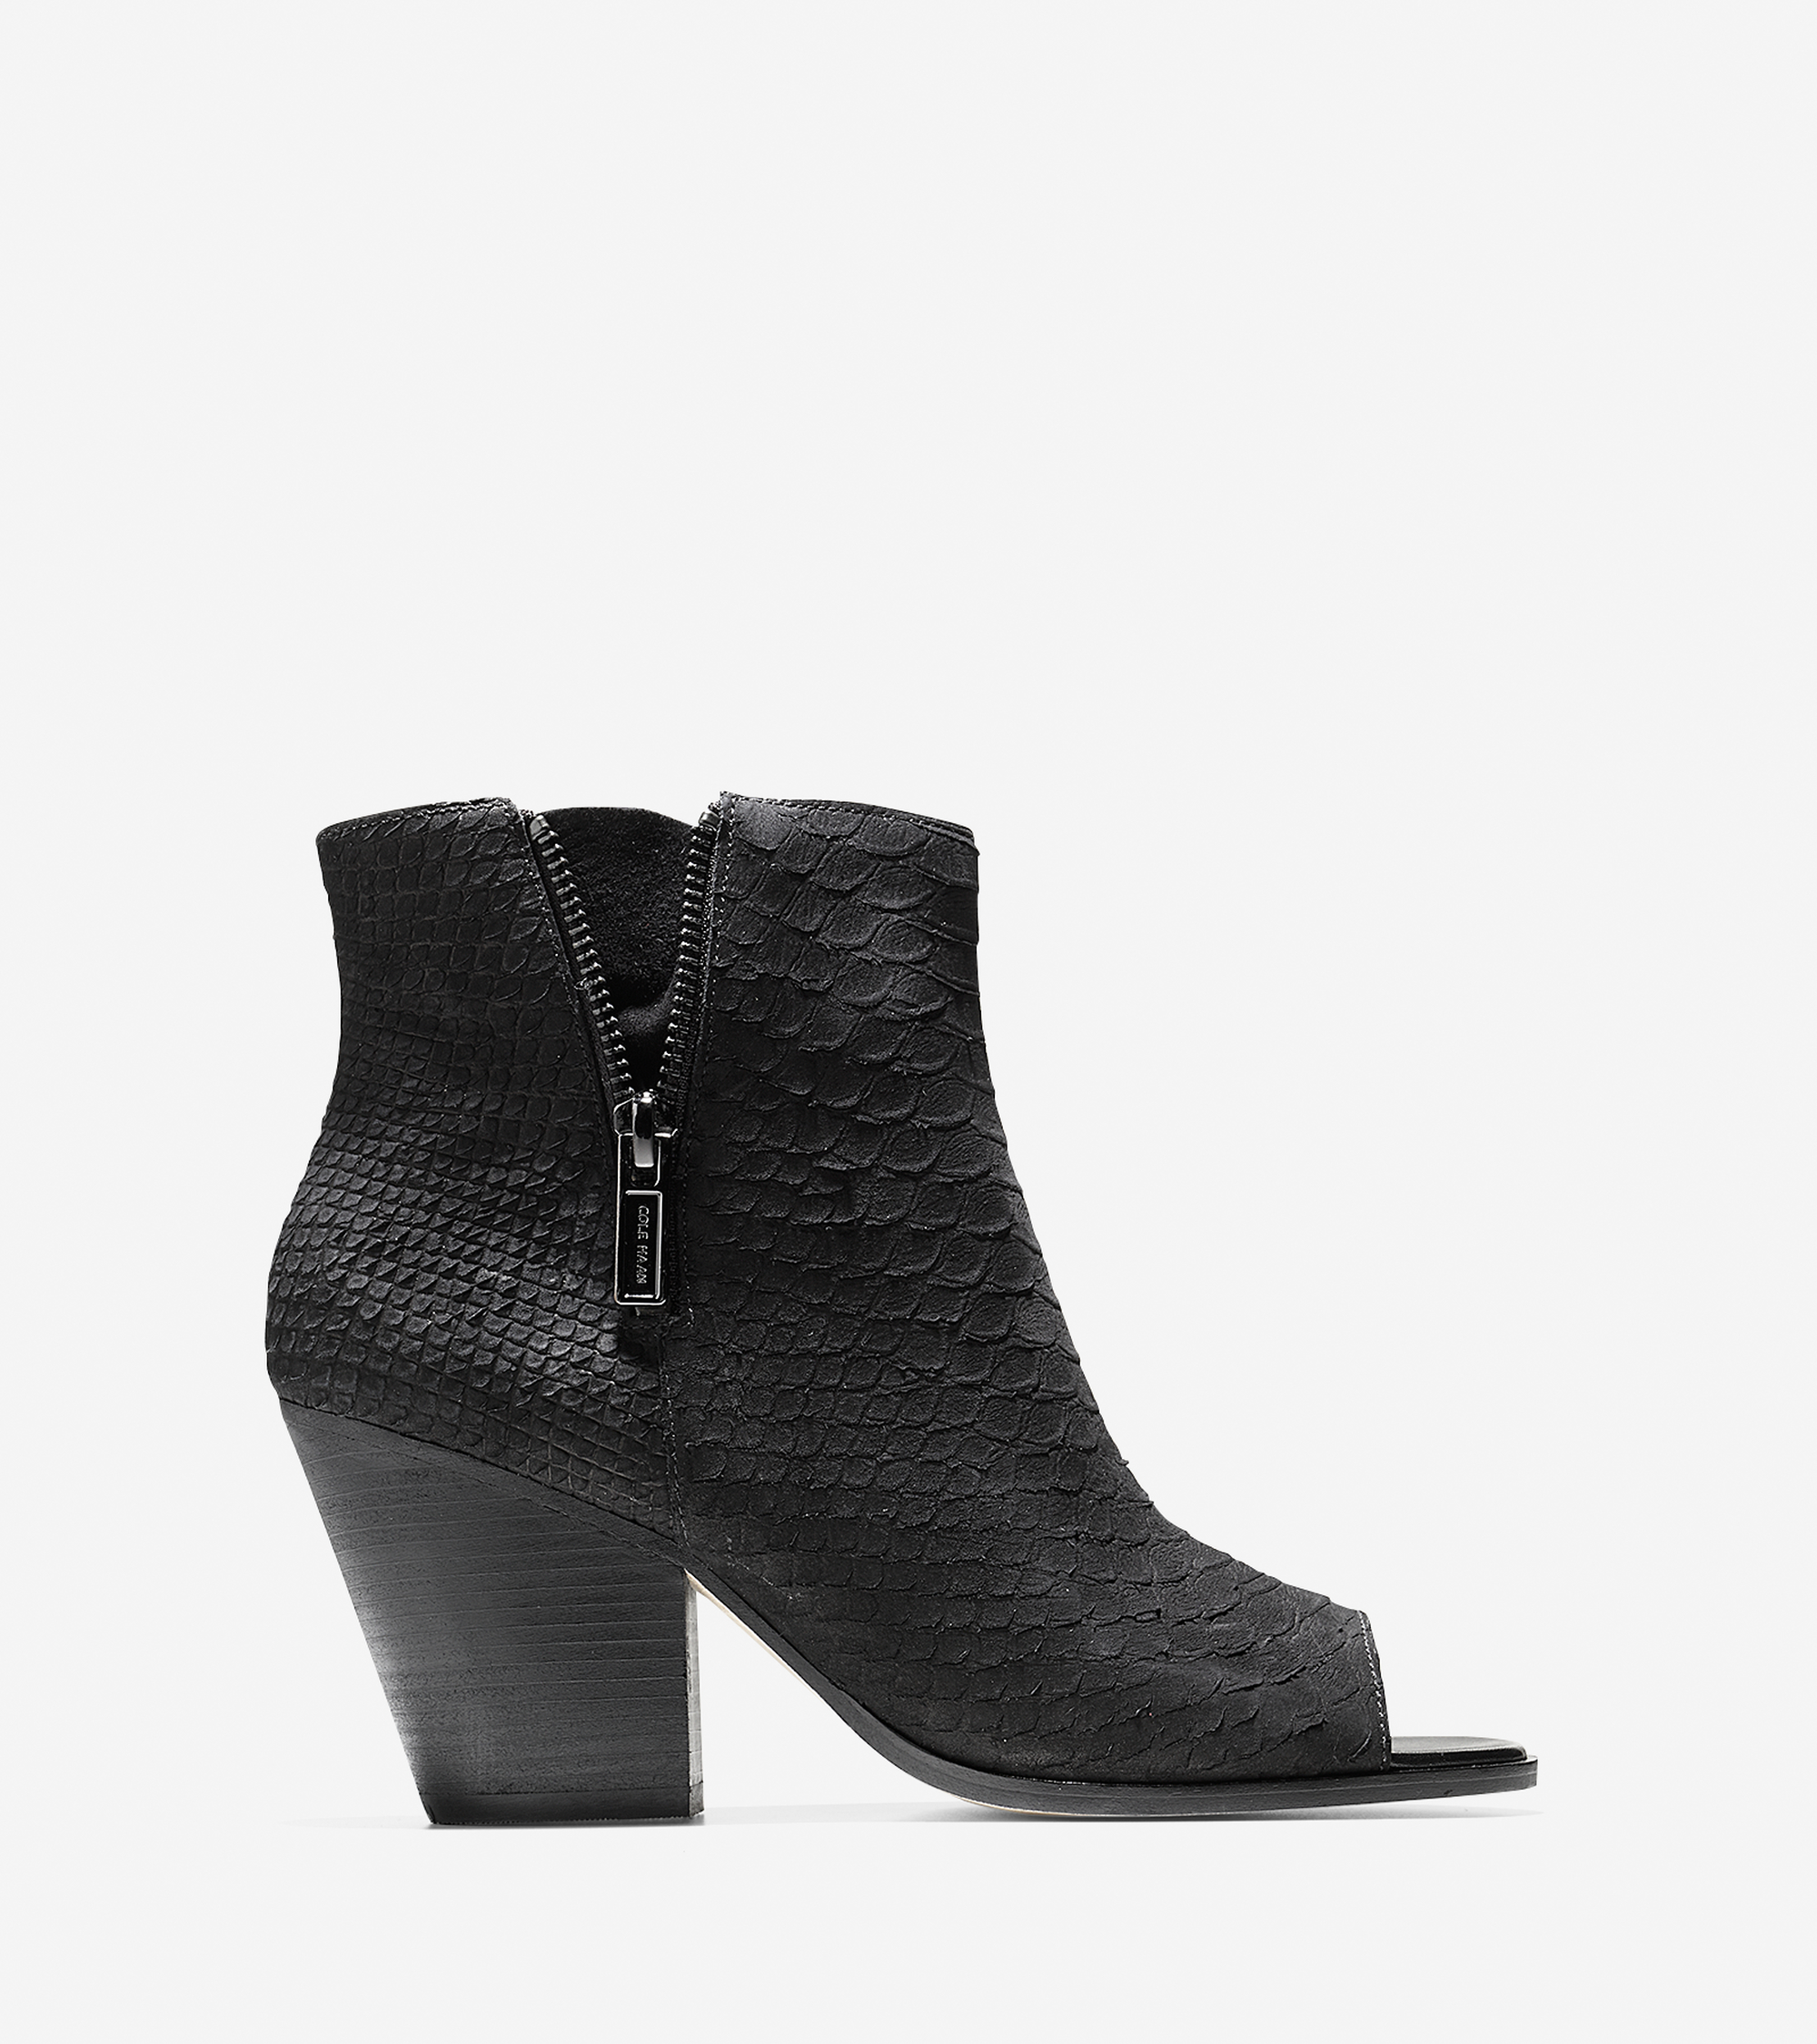 cole haan lundy open toe bootie 75mm in black lyst. Black Bedroom Furniture Sets. Home Design Ideas